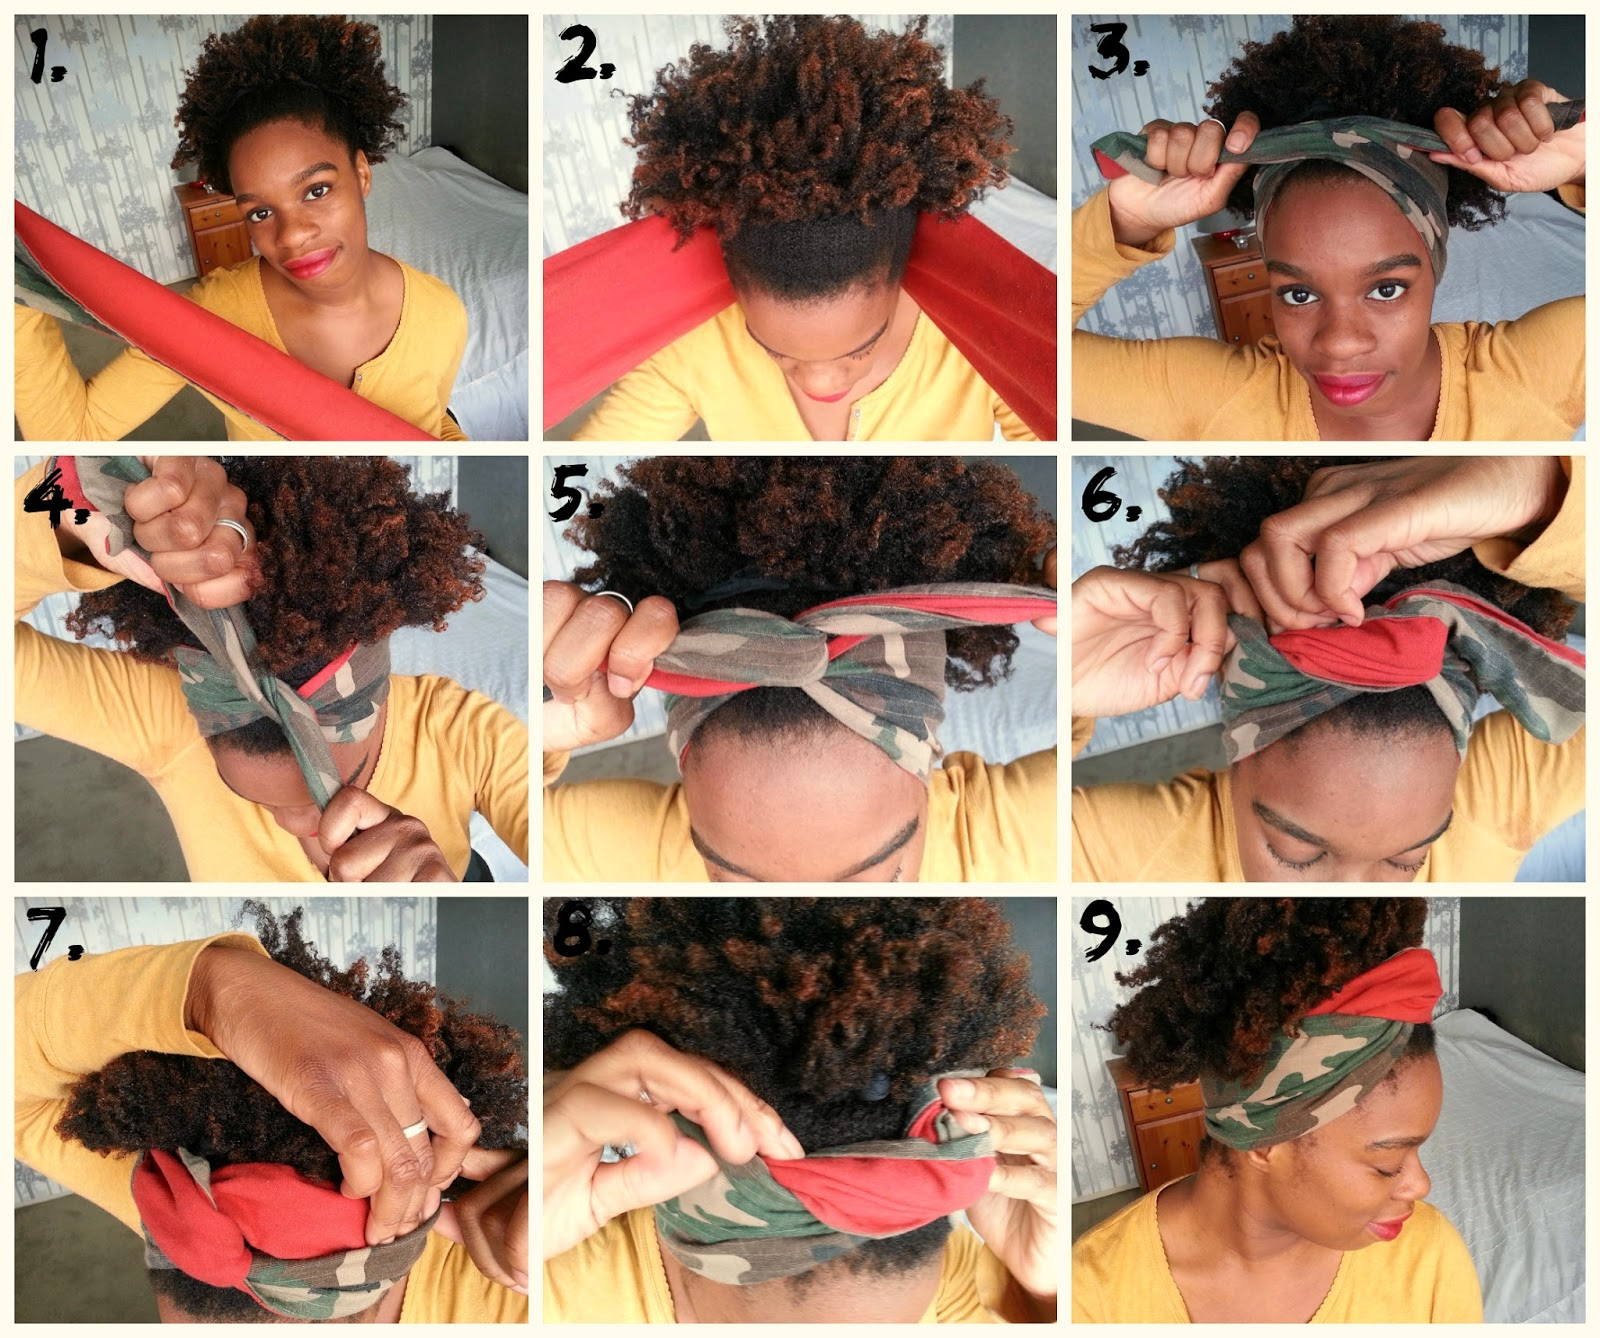 Awe Inspiring Sunfrolove 5 Ways To Style Headbands And Scarfs Natural Hair Short Hairstyles For Black Women Fulllsitofus